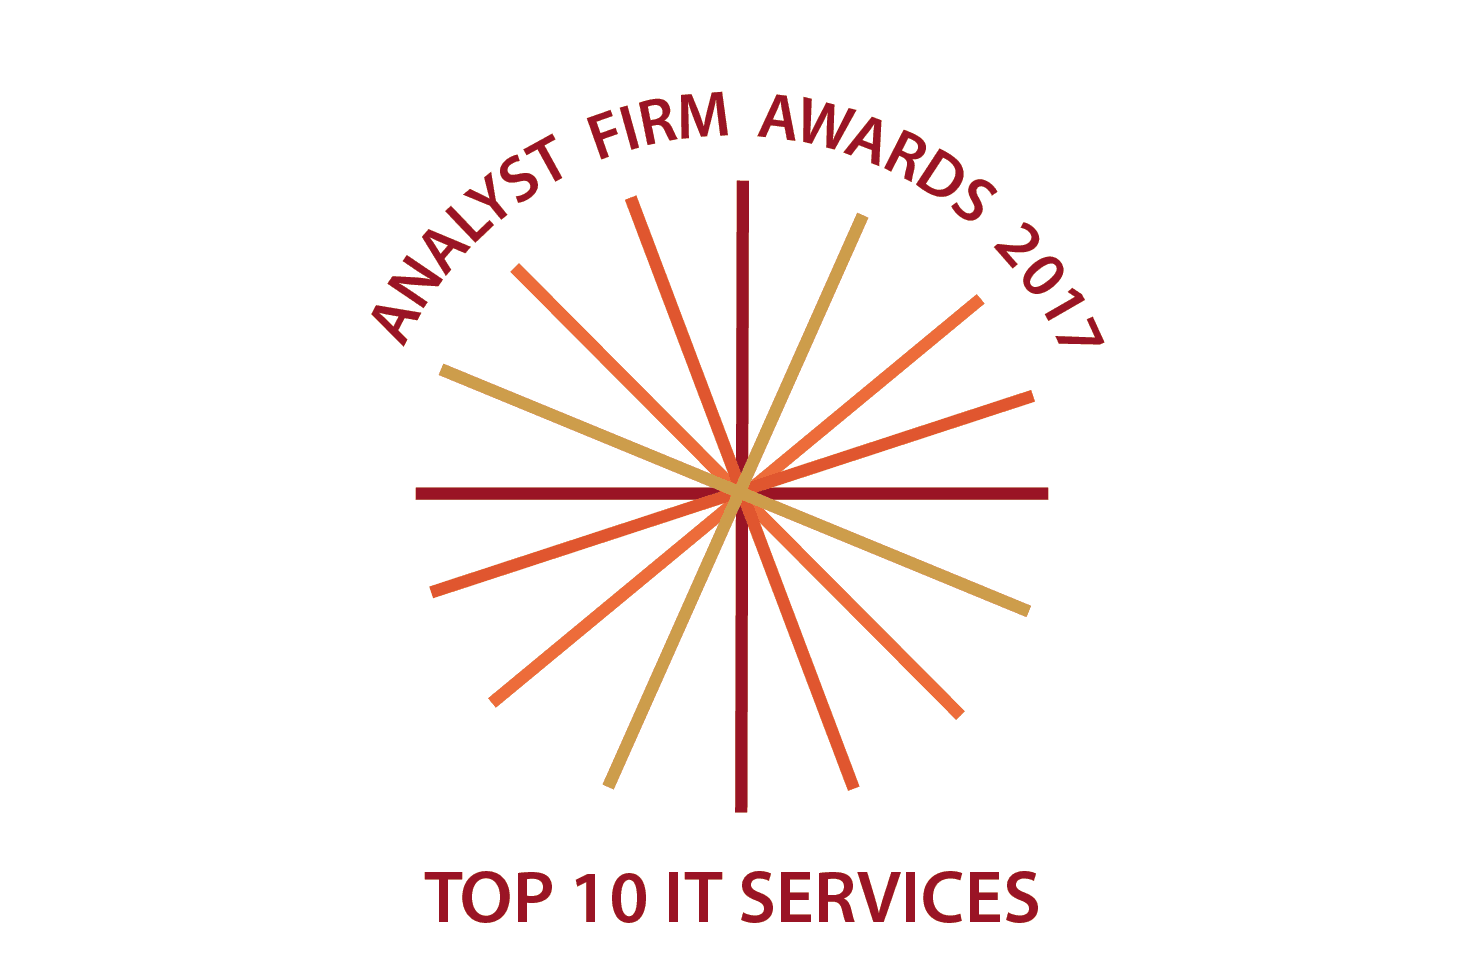 CXP & HfS overtake ISG in 2017 IT Services Analyst Firm Awards